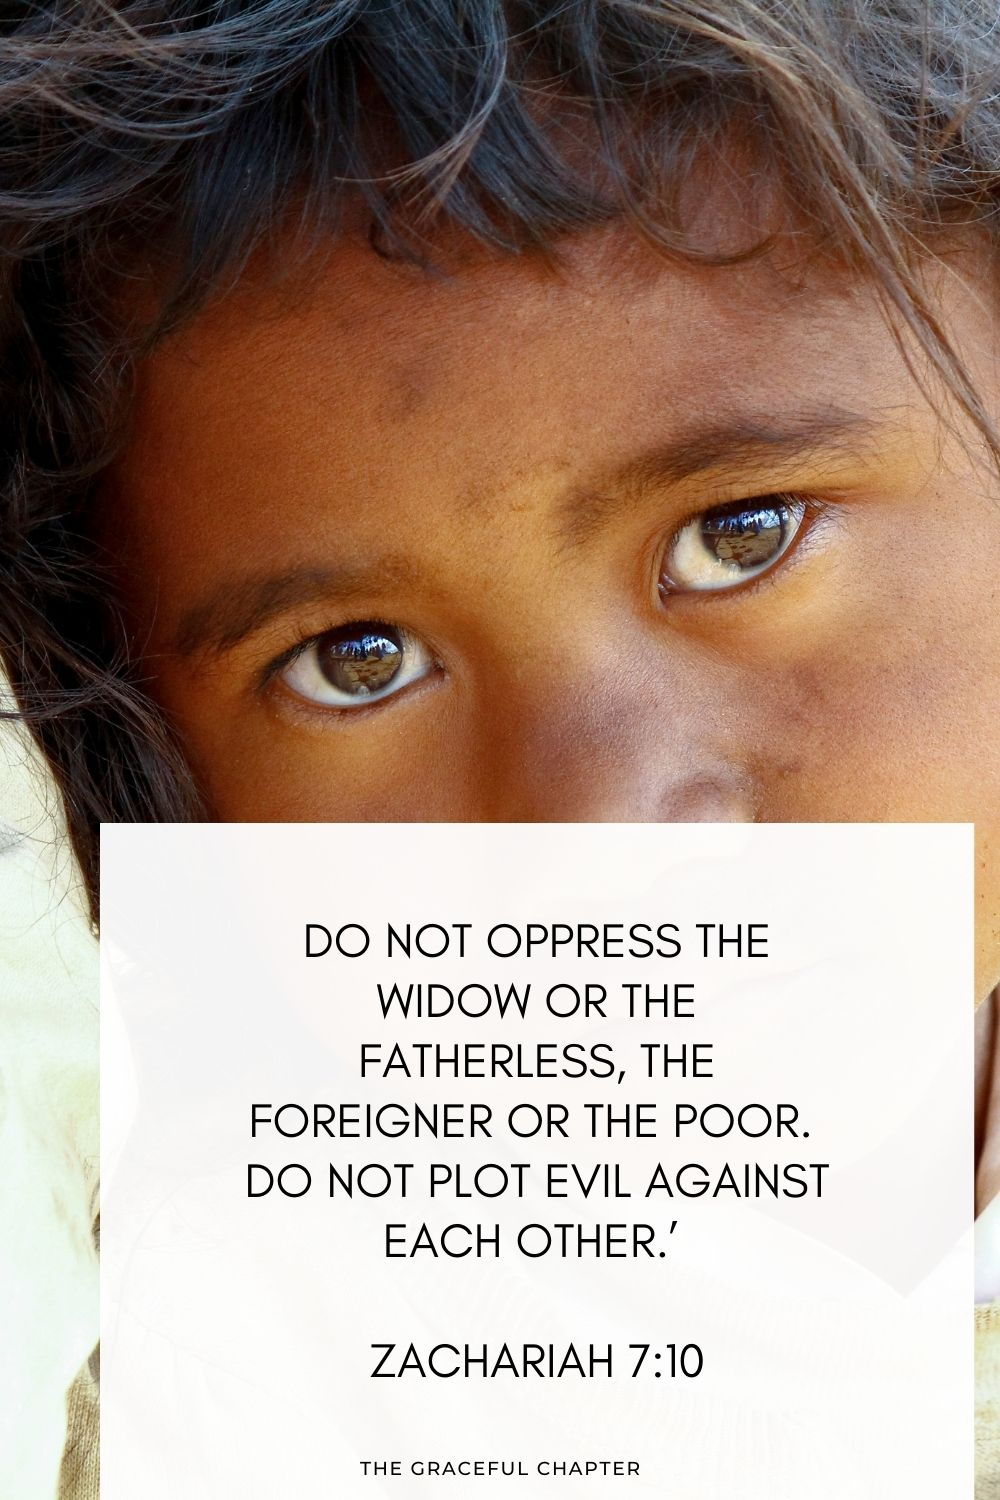 Do not oppress the widow or the fatherless, the foreigner or the poor. Do not plot evil against each other.' Zachariah 7:10